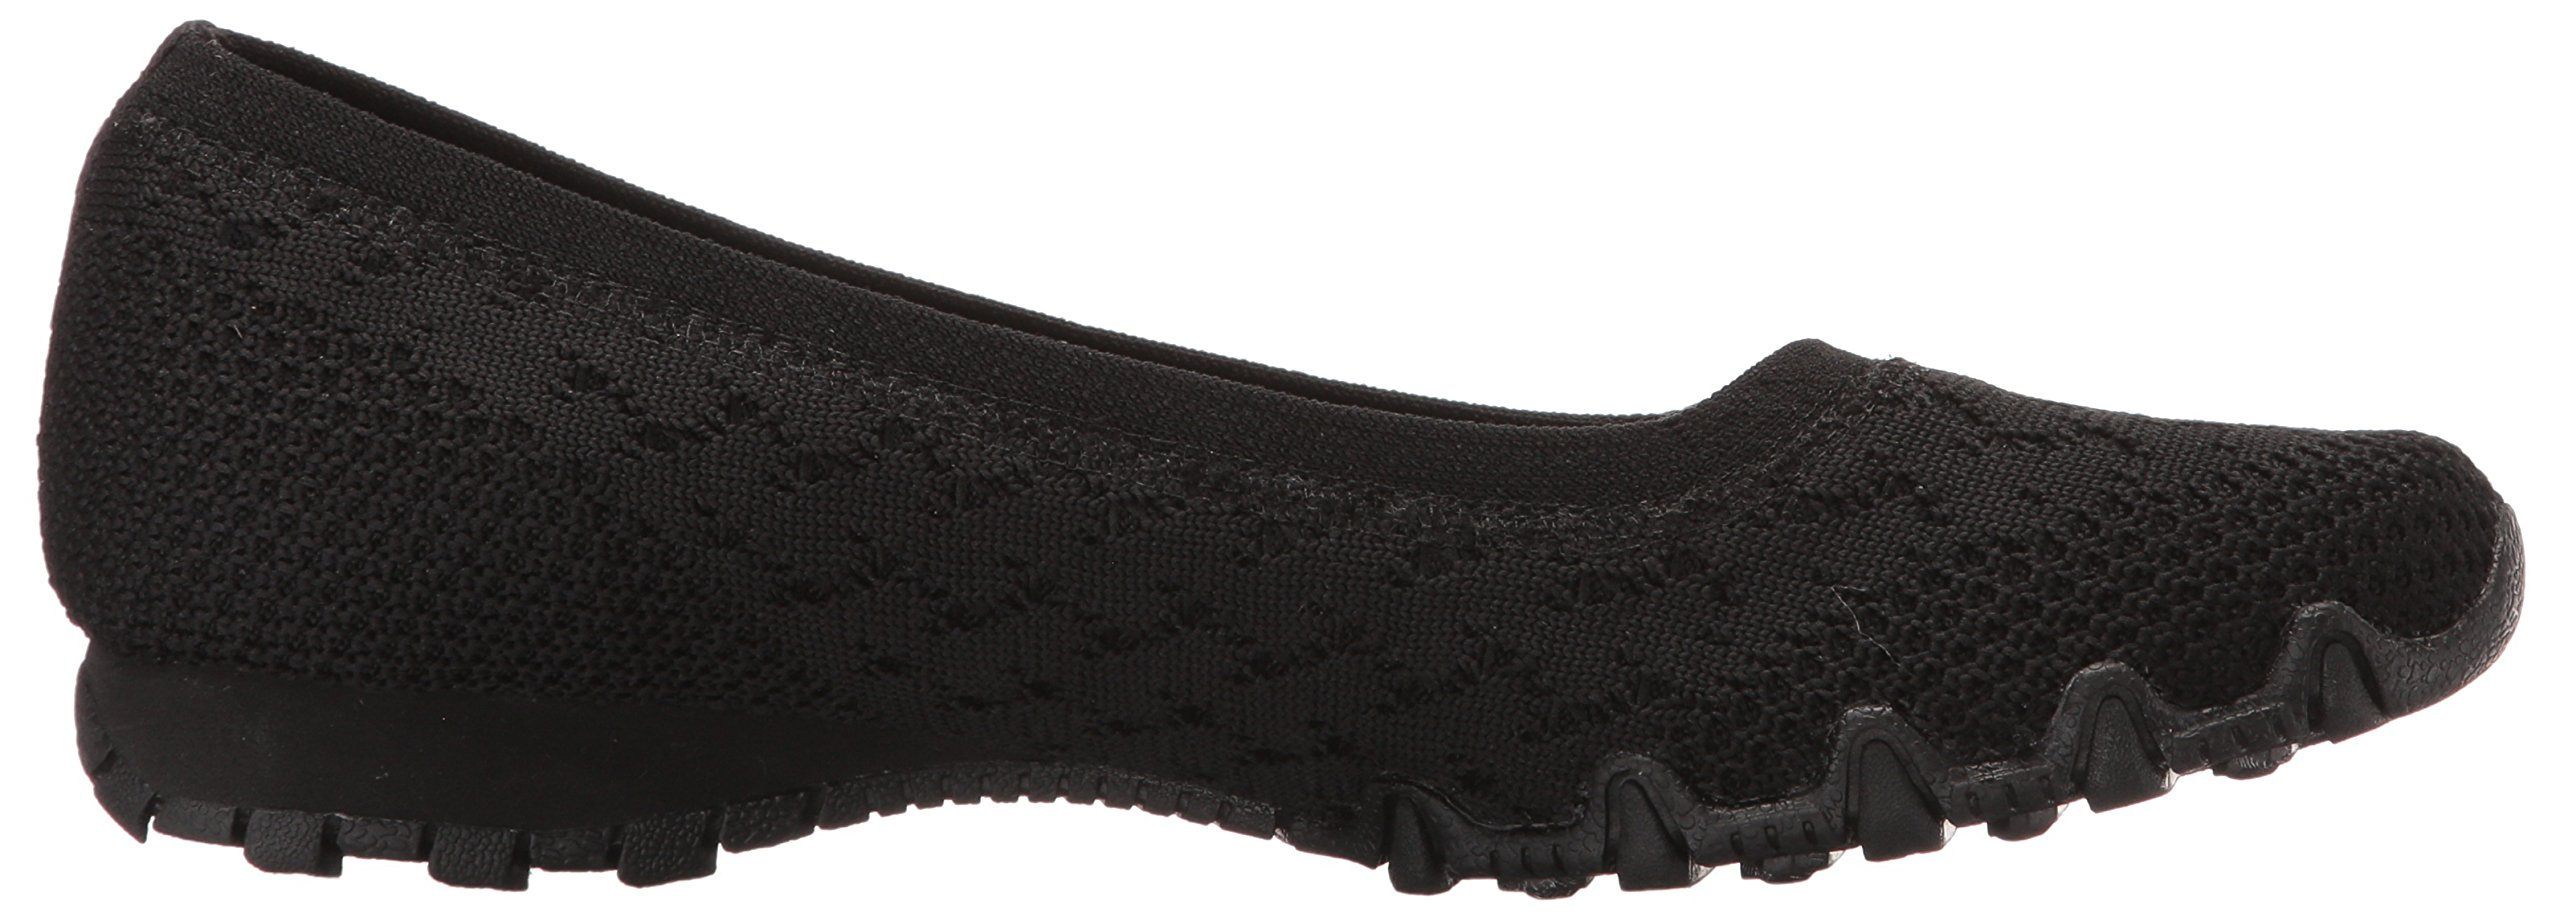 Skechers Women's Bikers-Witty Knit Ballet Flat, black, 10 Extra Wide US by Skechers (Image #7)